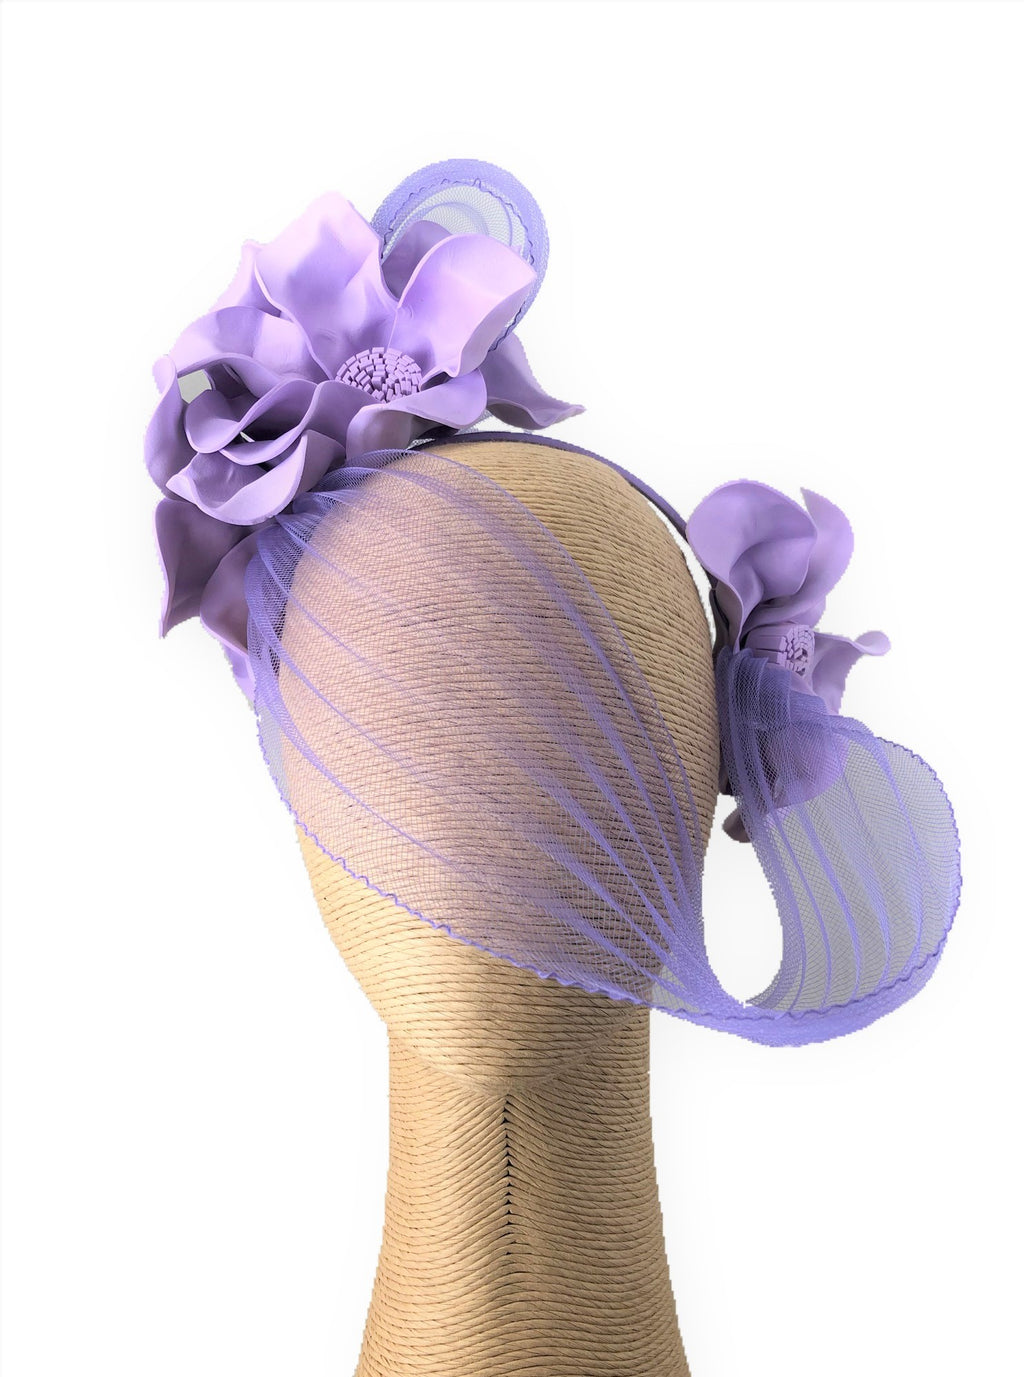 Claire Hahn Crinoline Mask Headpiece in Lavender